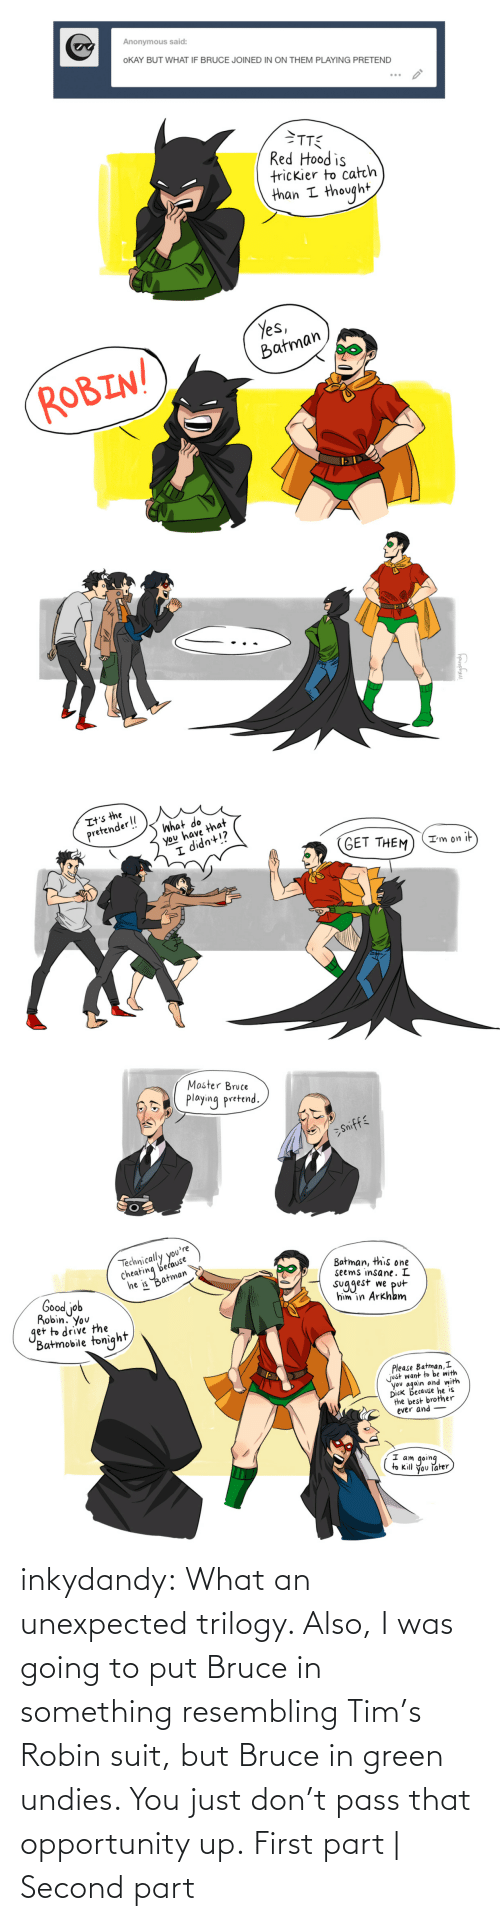 Unexpected: inkydandy: What an unexpected trilogy. Also, I was going to put Bruce in something resembling Tim's Robin suit, but Bruce in green undies. You just don't pass that opportunity up. First part | Second part